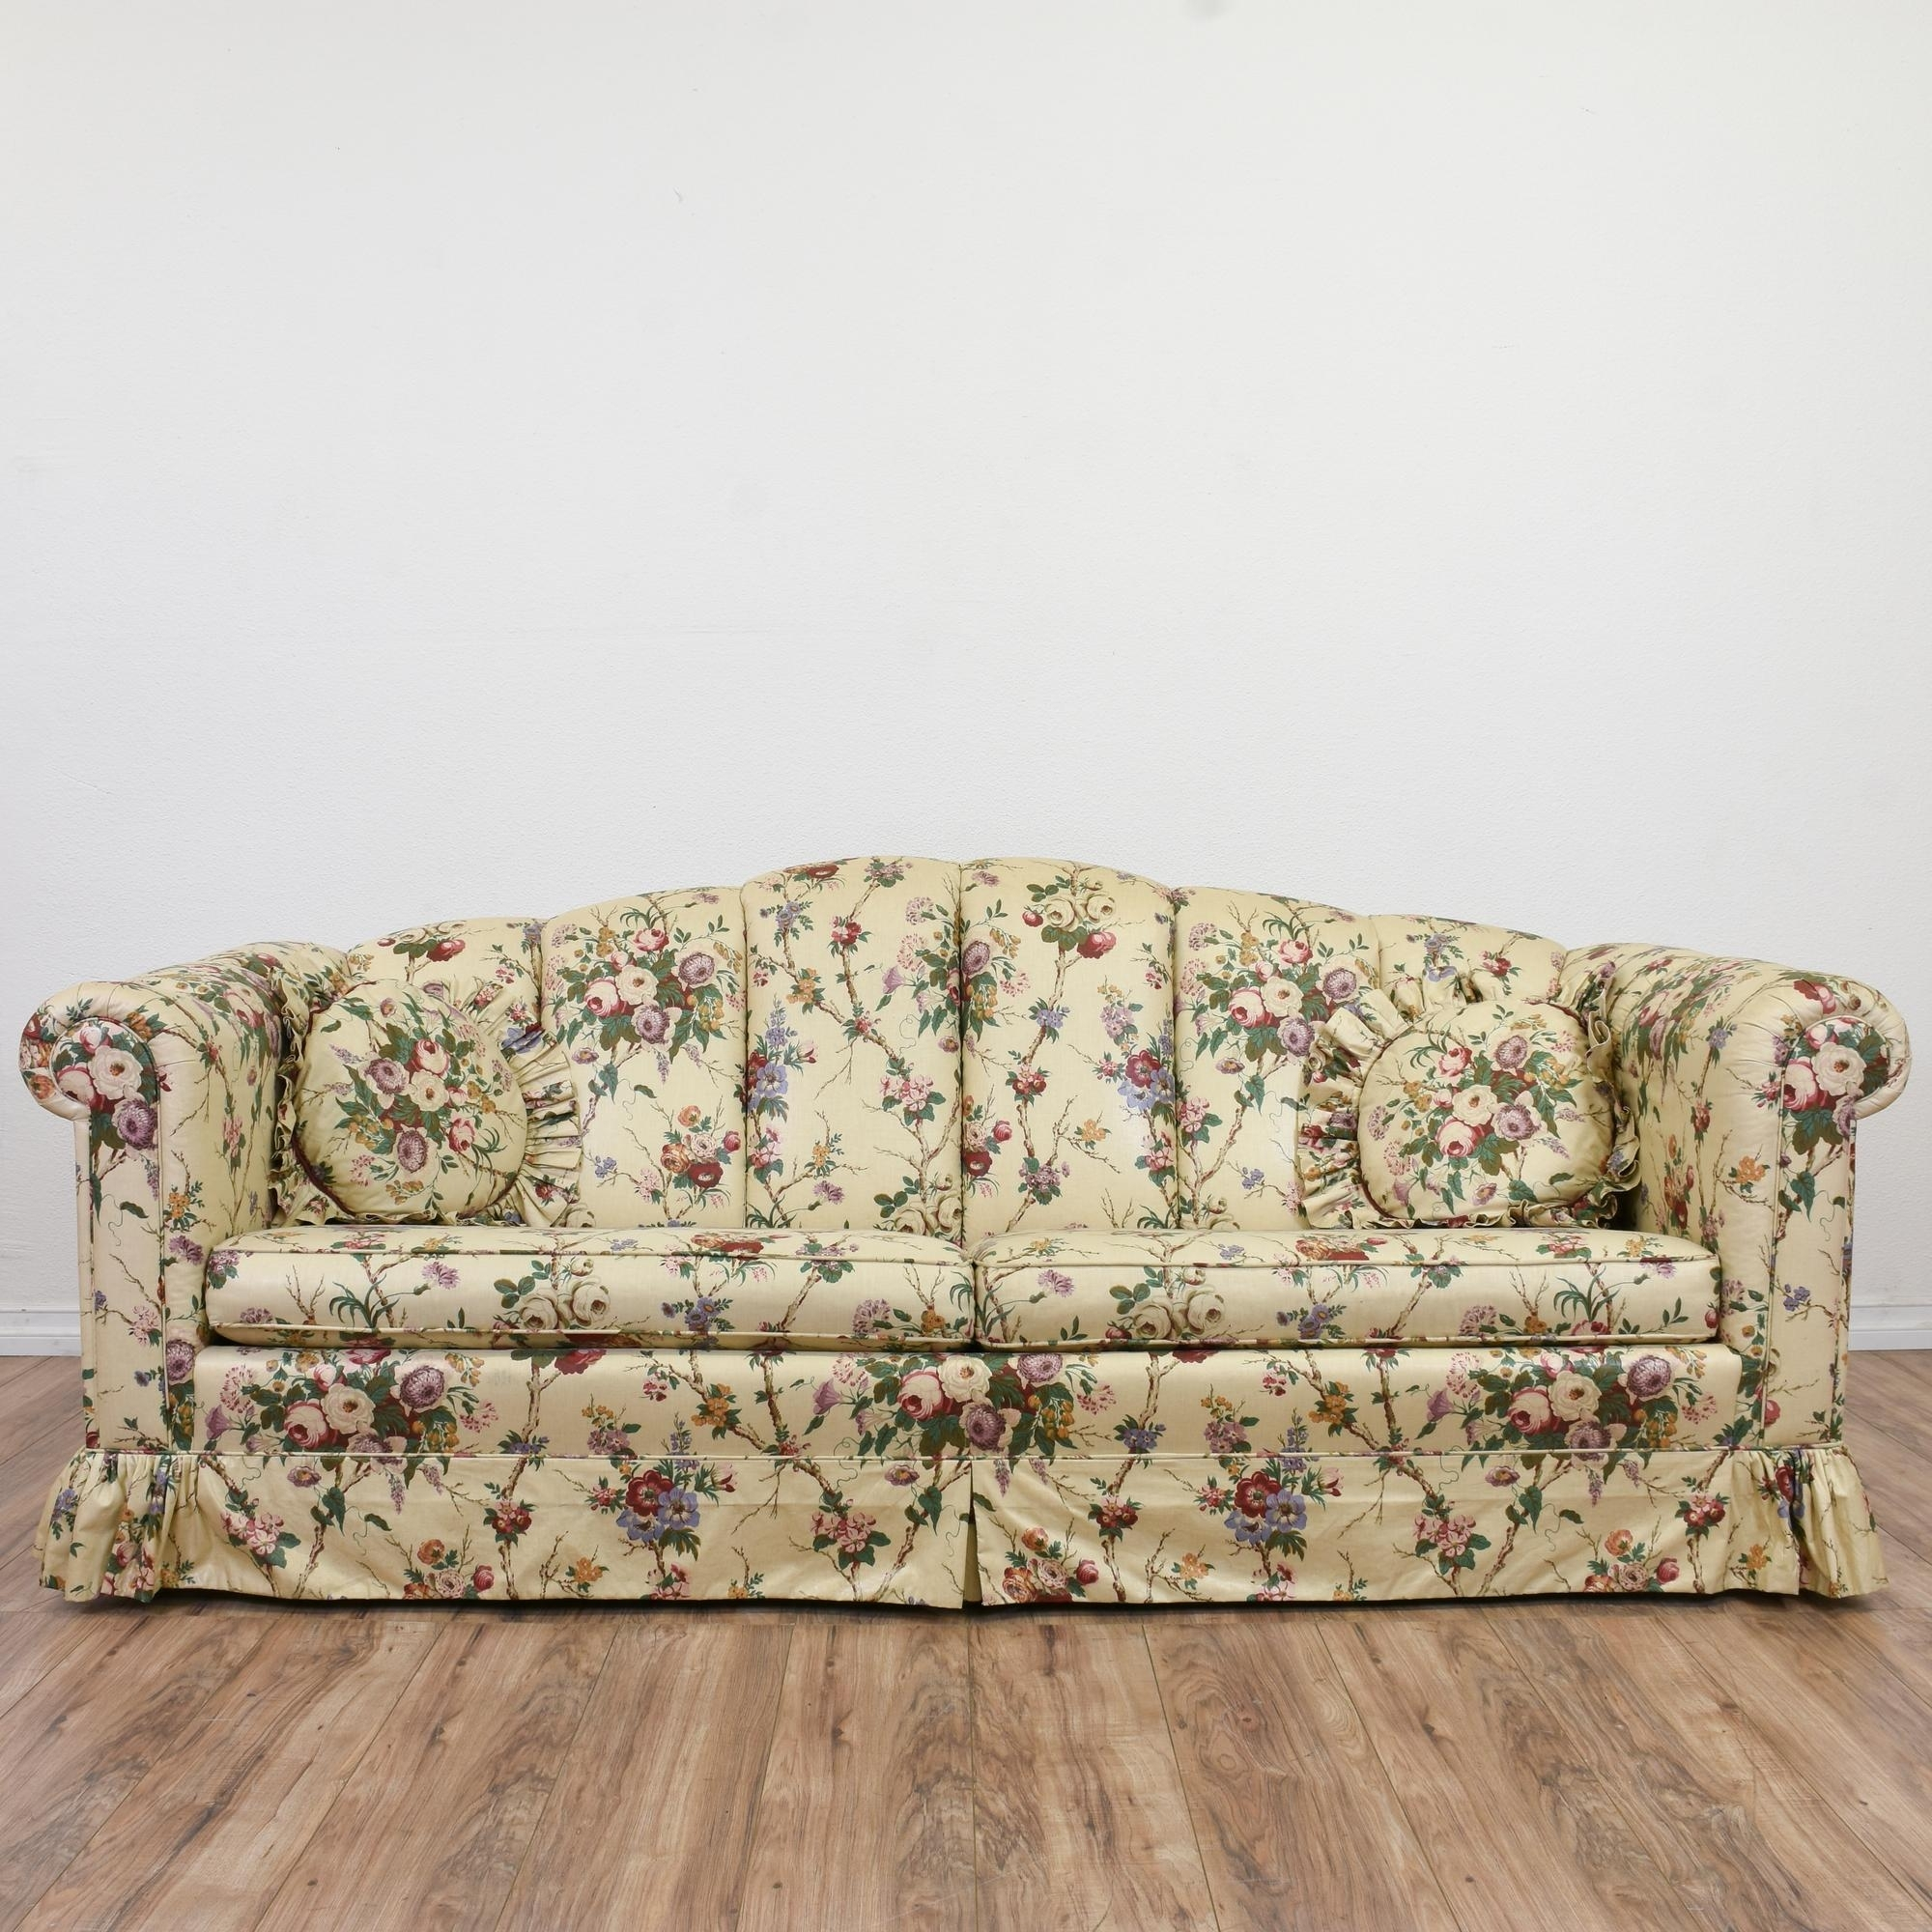 This Sofa Is Upholstered In A Durable Off White Beige, Pink And With Widely Used Yellow Chintz Sofas (View 2 of 15)